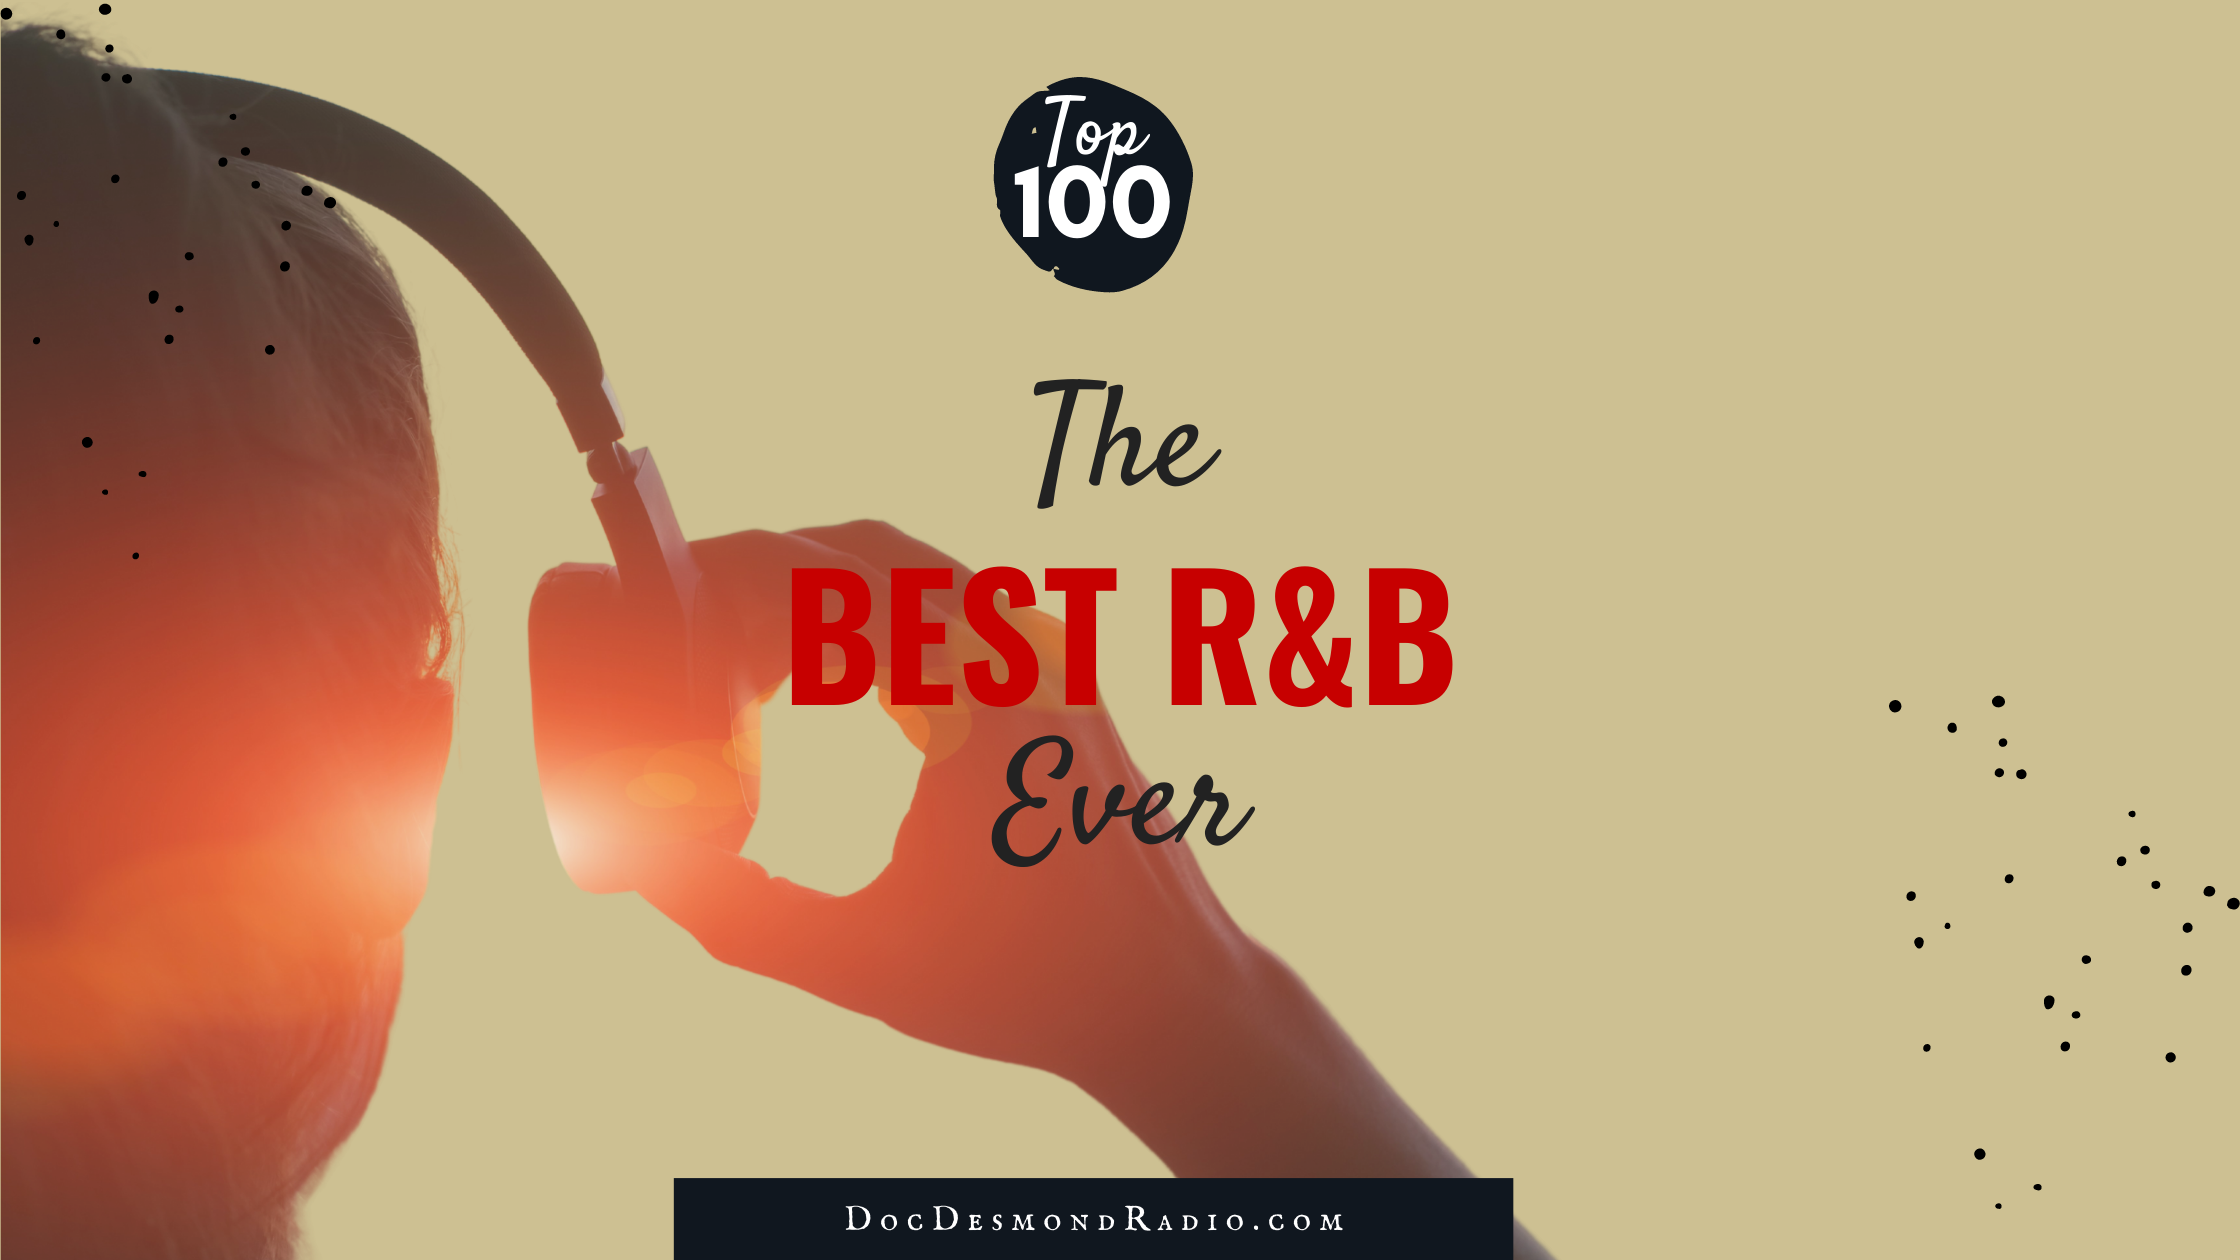 Playlist: The Best R&B Ever